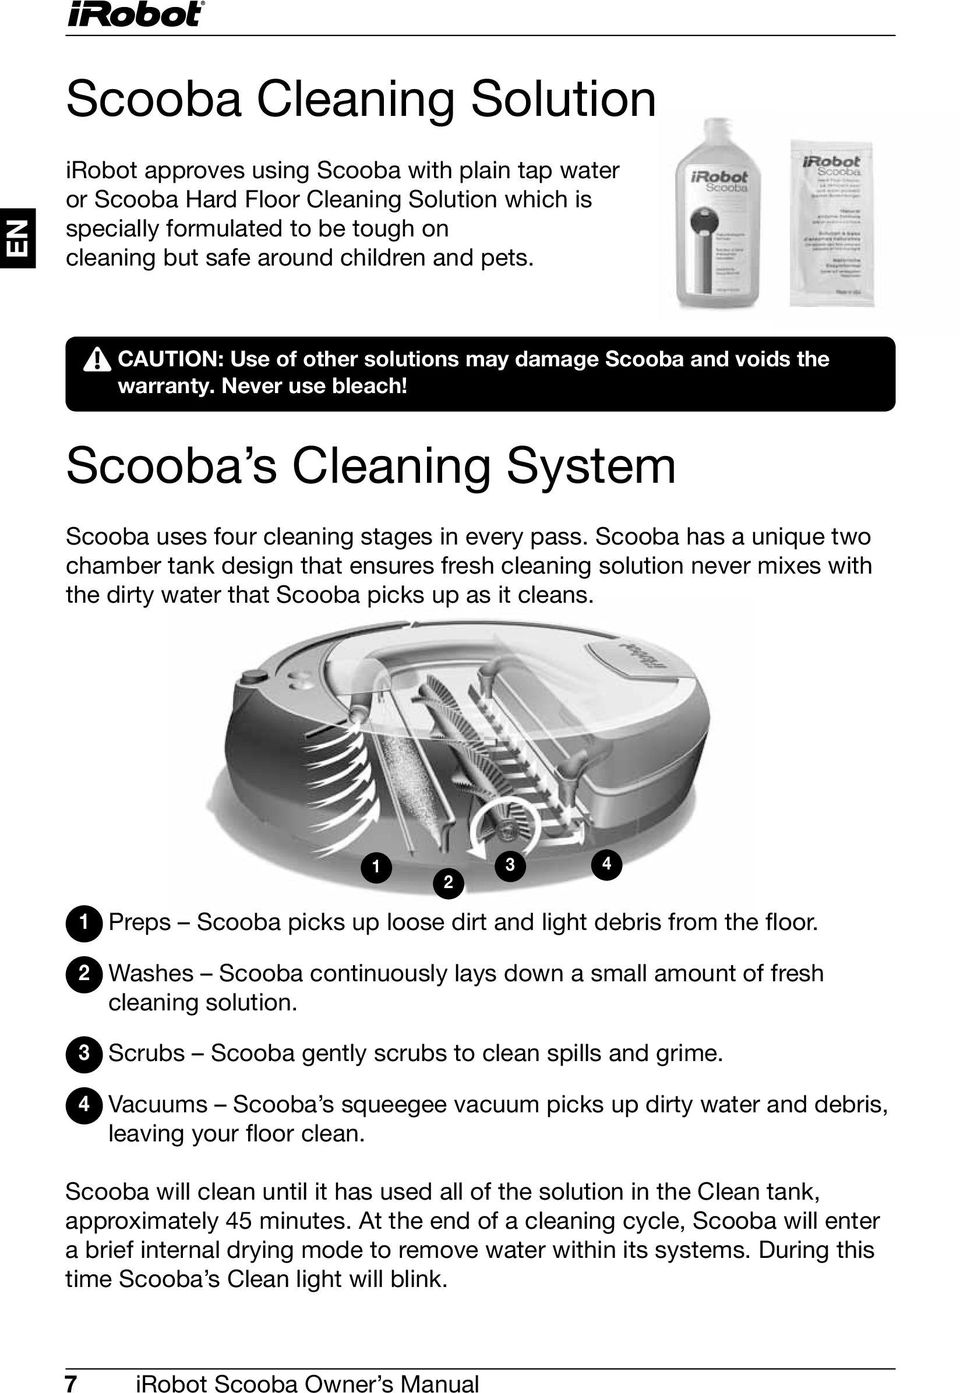 Scooba has a unique two chamber tank design that ensures fresh cleaning solution never mixes with the dirty water that Scooba picks up as it cleans.